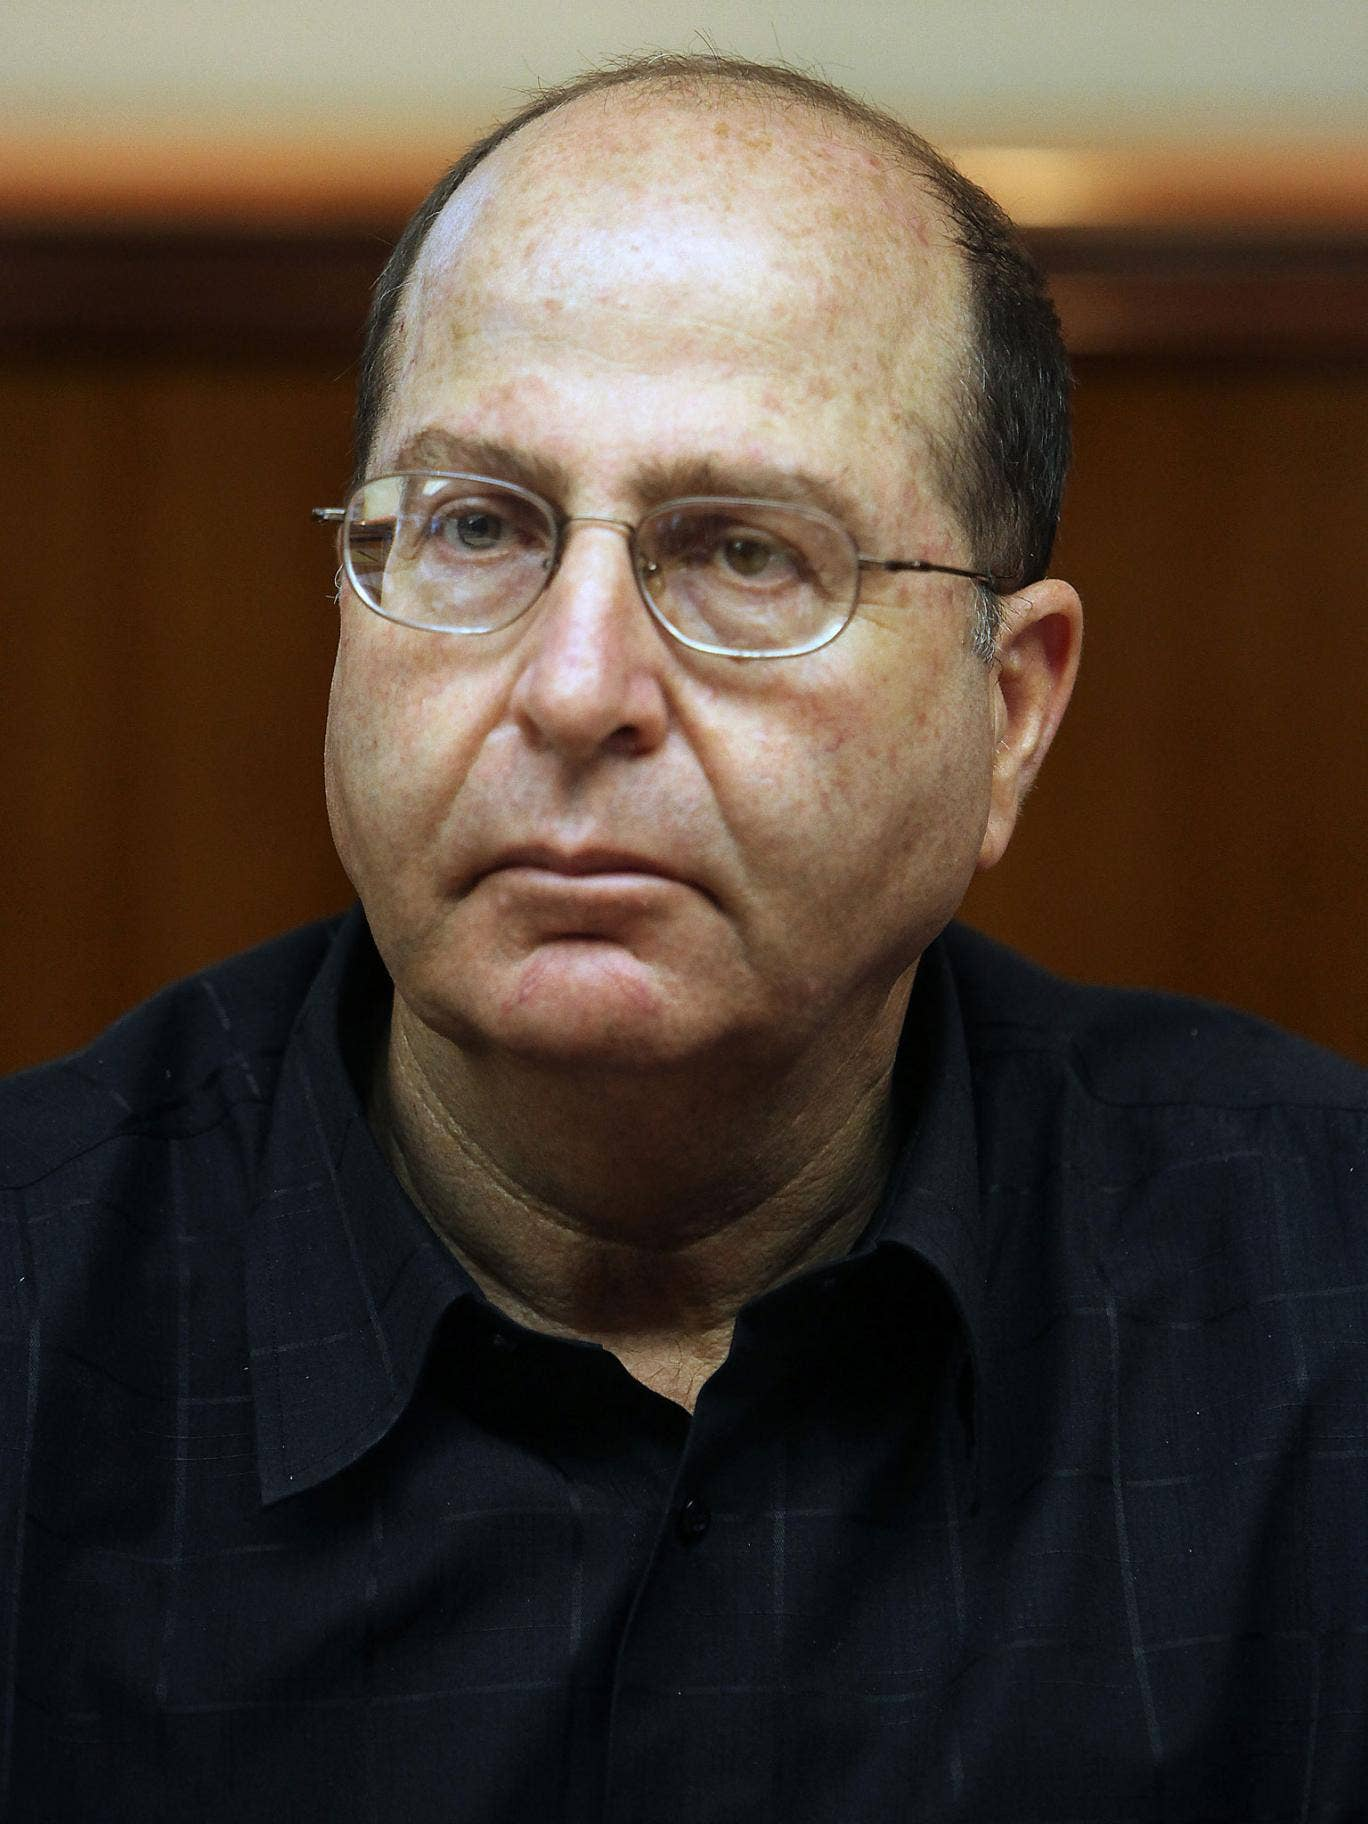 'The discovery of the tunnel… prevented attempts to harm Israeli civilians who live close to the border and military forces in the area,' said the Israeli Defence Minister, Moshe Yaalon